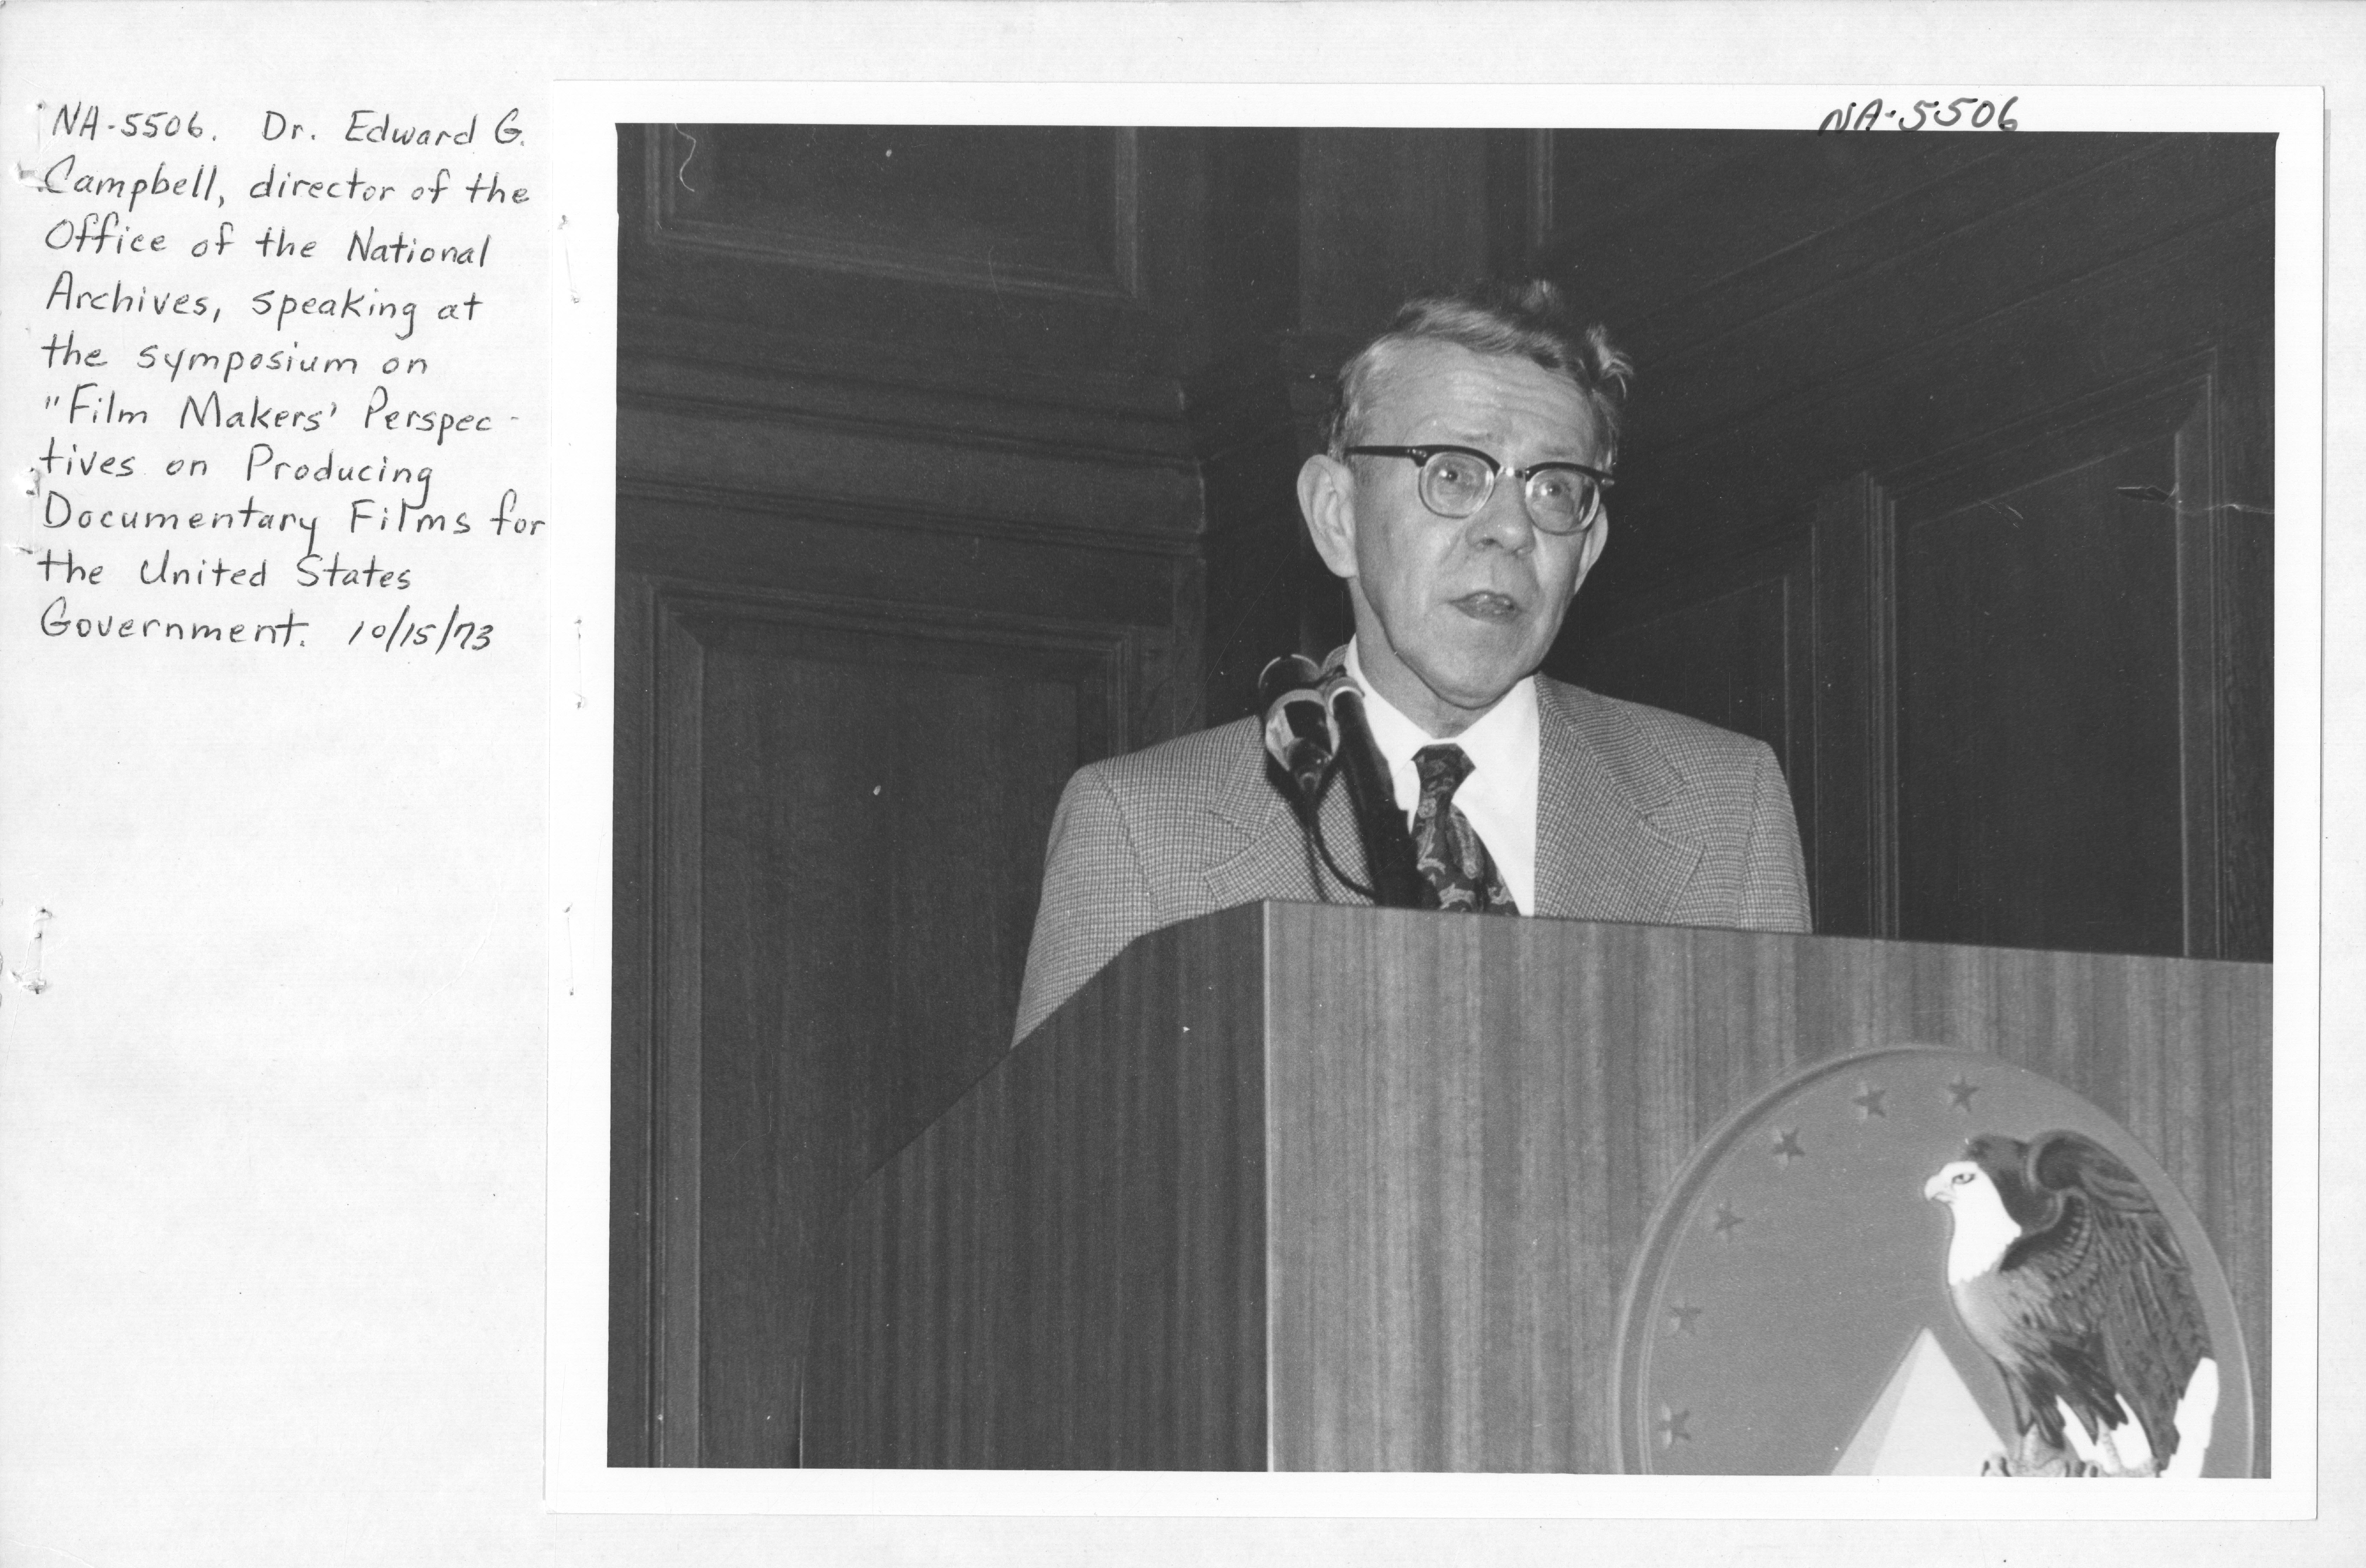 Photograph of Dr. Edward G. Campbell Speaking at the Symposium on